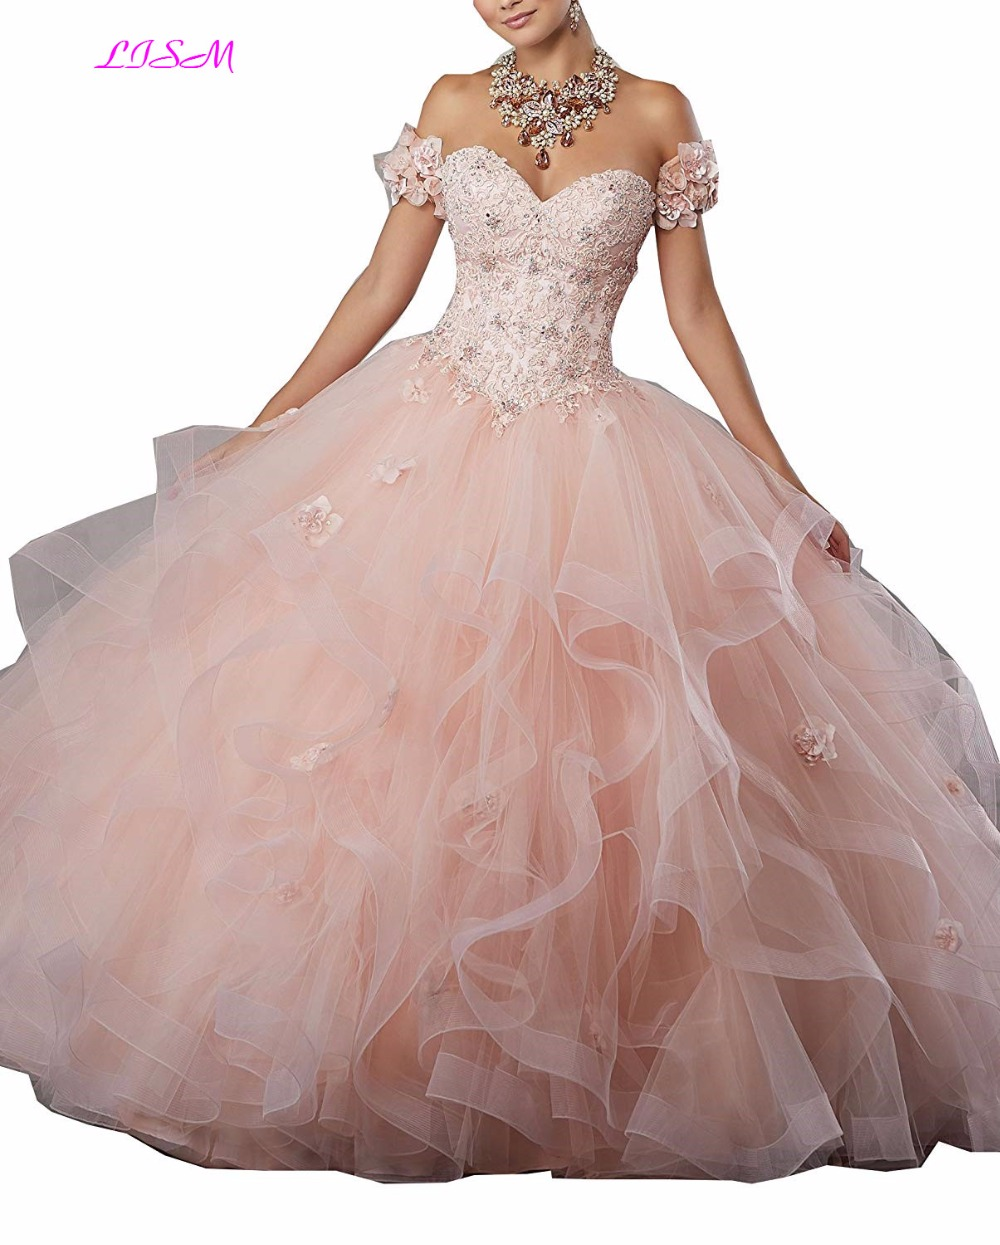 Sweetheart Lace Appliques Sweet 16 Quinceanera Dress Debutante Flowers Beadings Tulle Prom Party Gowns Long Lace Up Formal Gowns